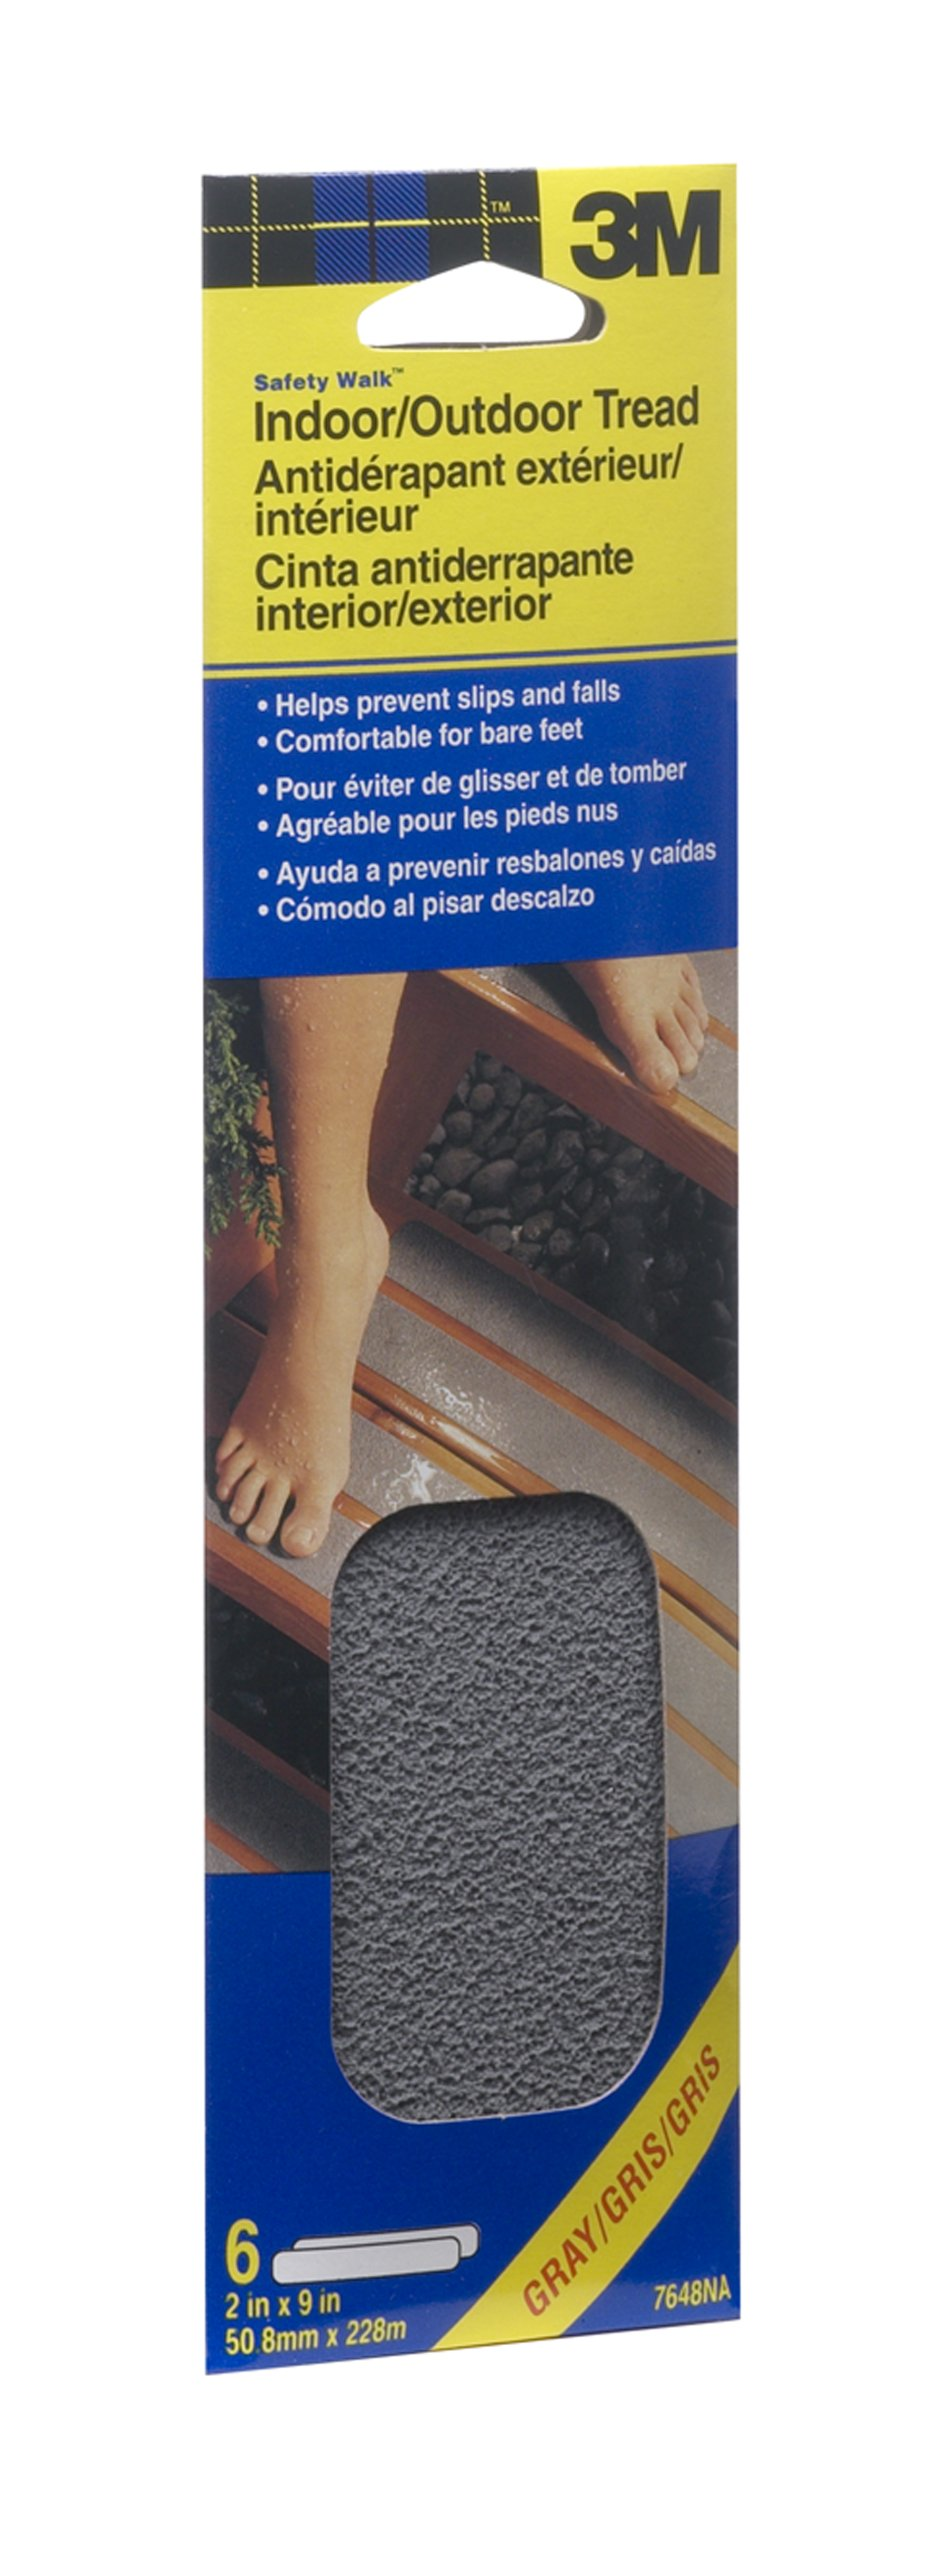 3M Safety-Walk Gray Indoor/Outdoor Tread 2-Inch by 9-Inch Strip, 6-Strips, 7648NA